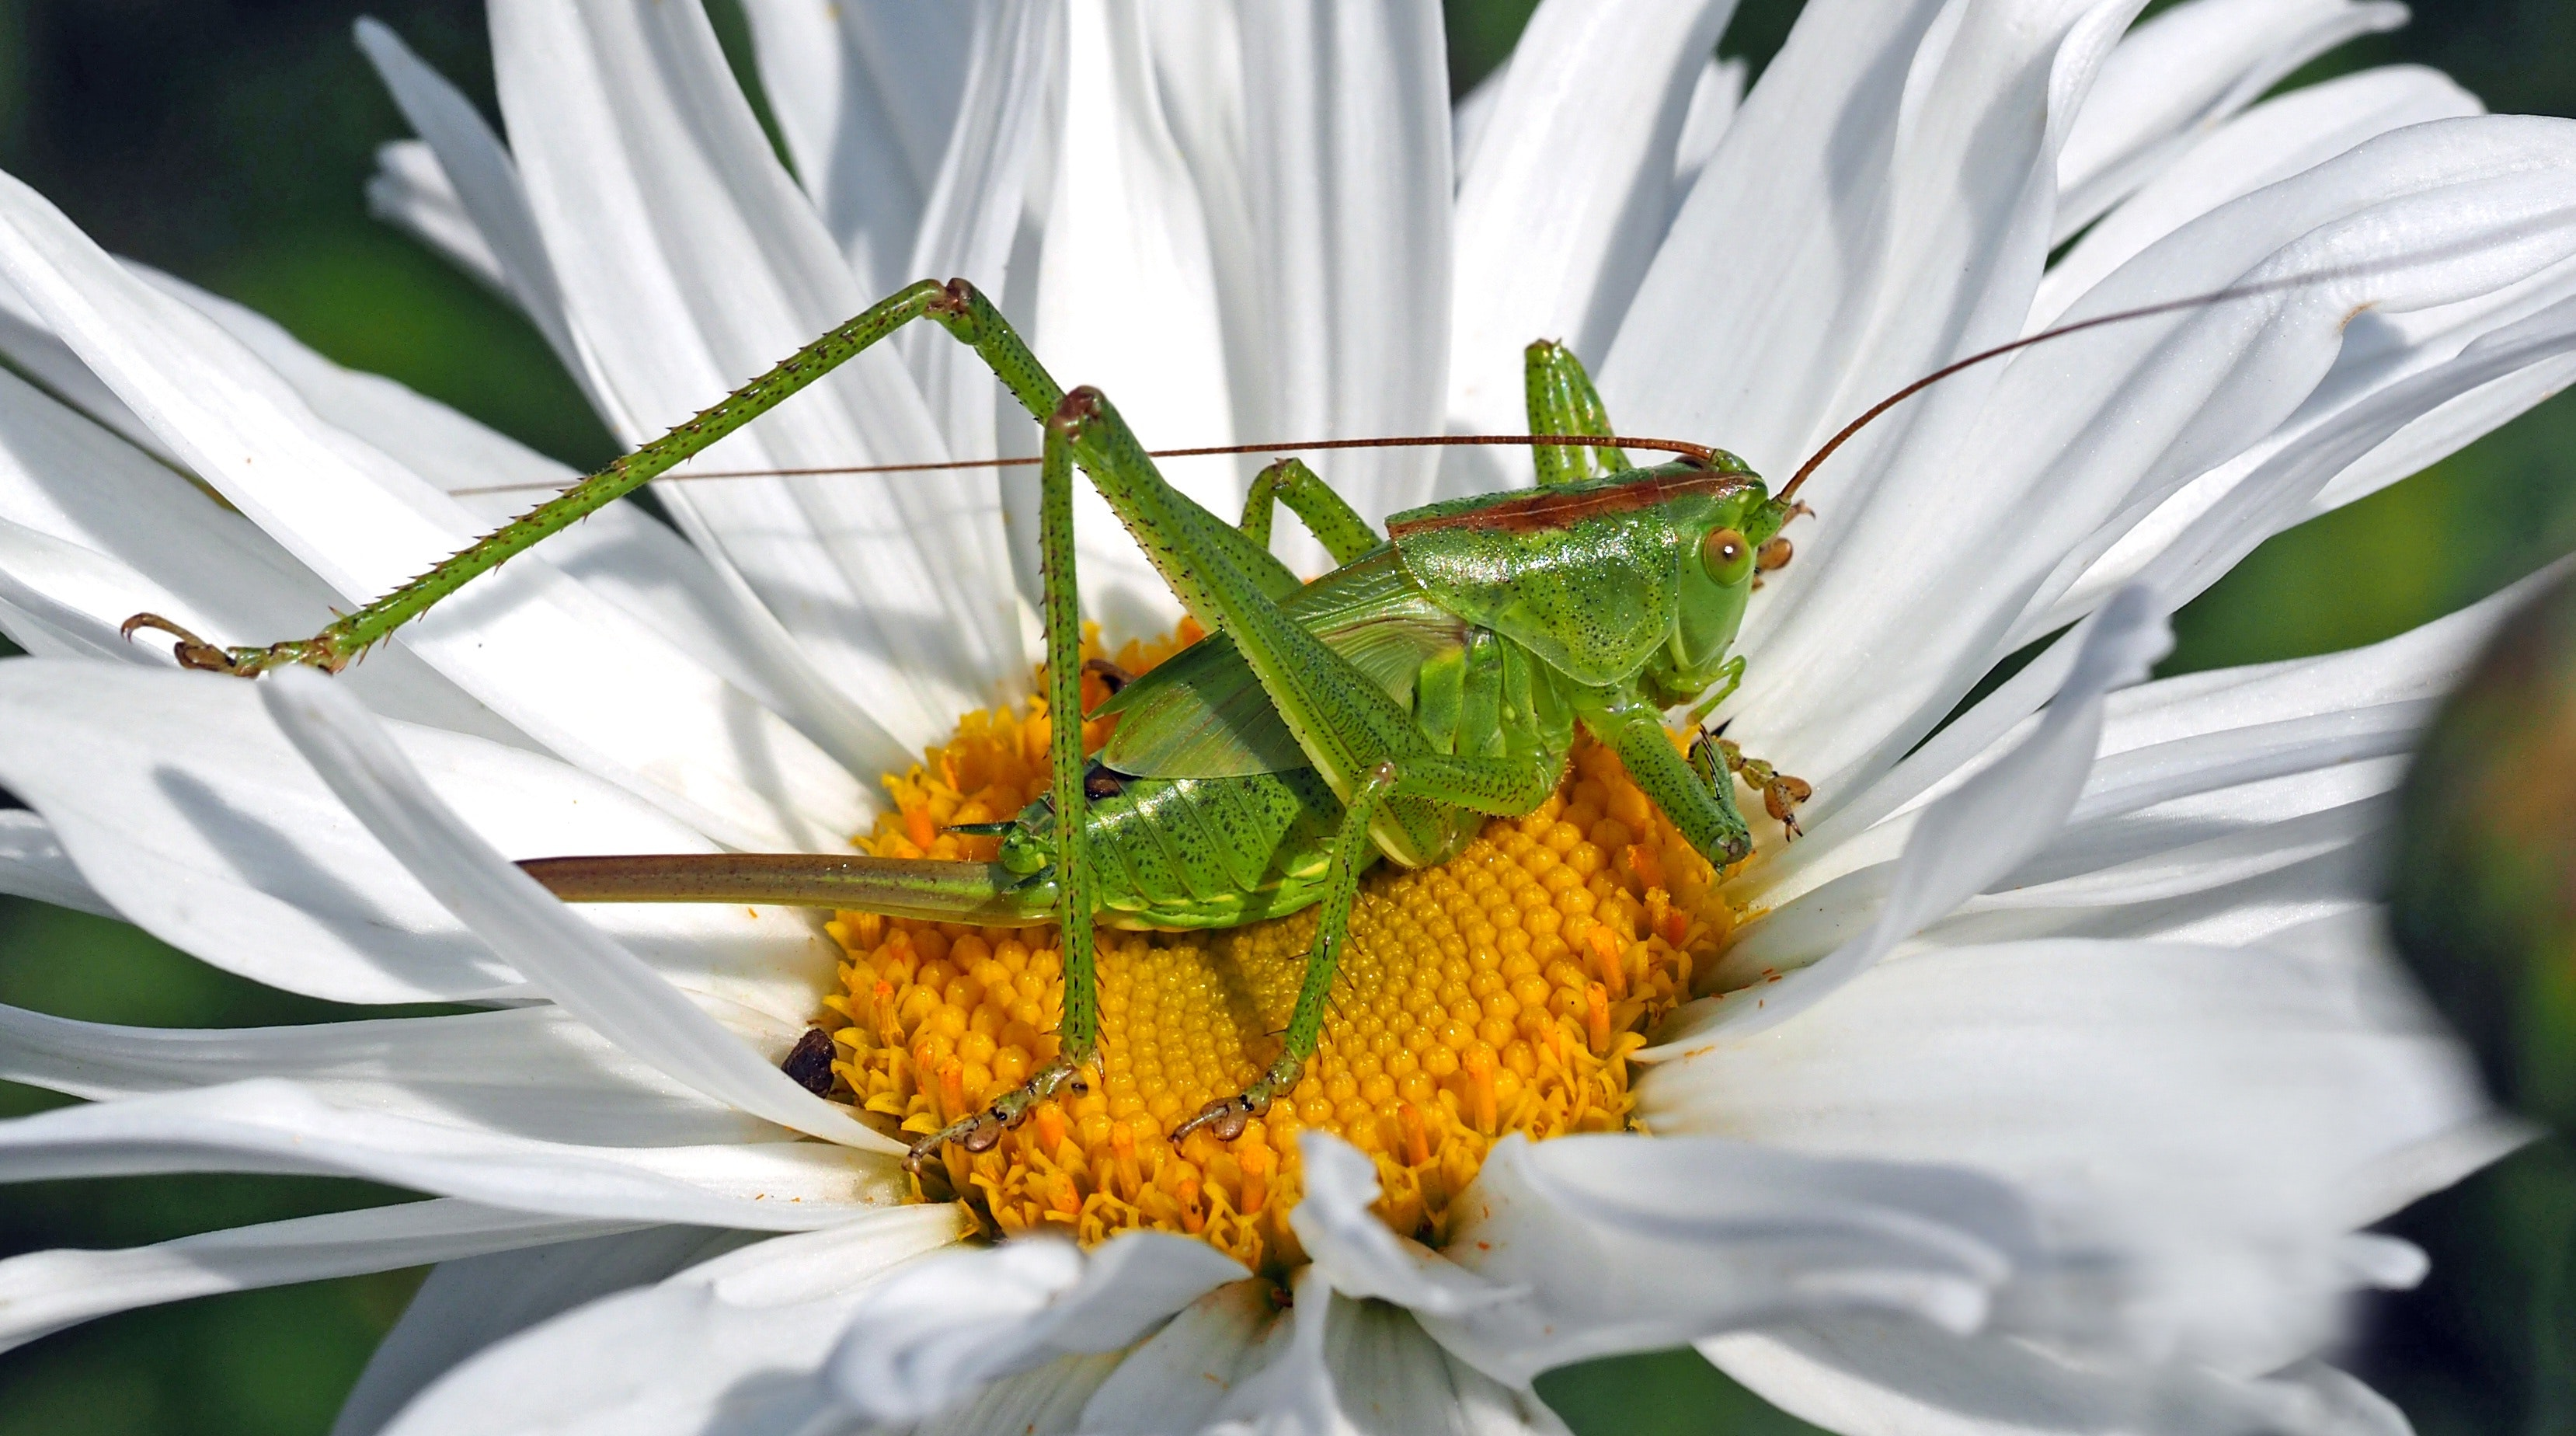 How to Get Rid of Grasshoppers the Organic Way